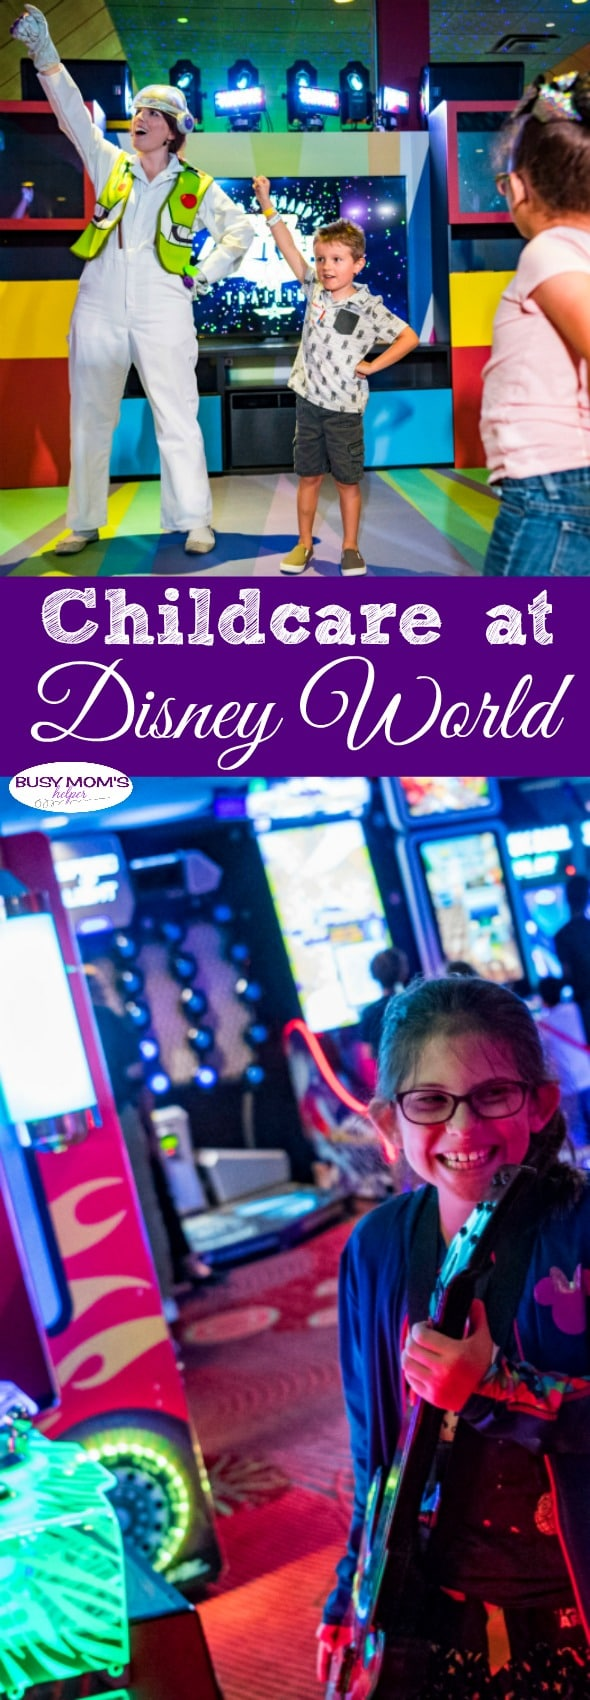 Childcare at Disney World - there's more options than you think! #waltdisneyworld #familytravel #disneytrip #wdw